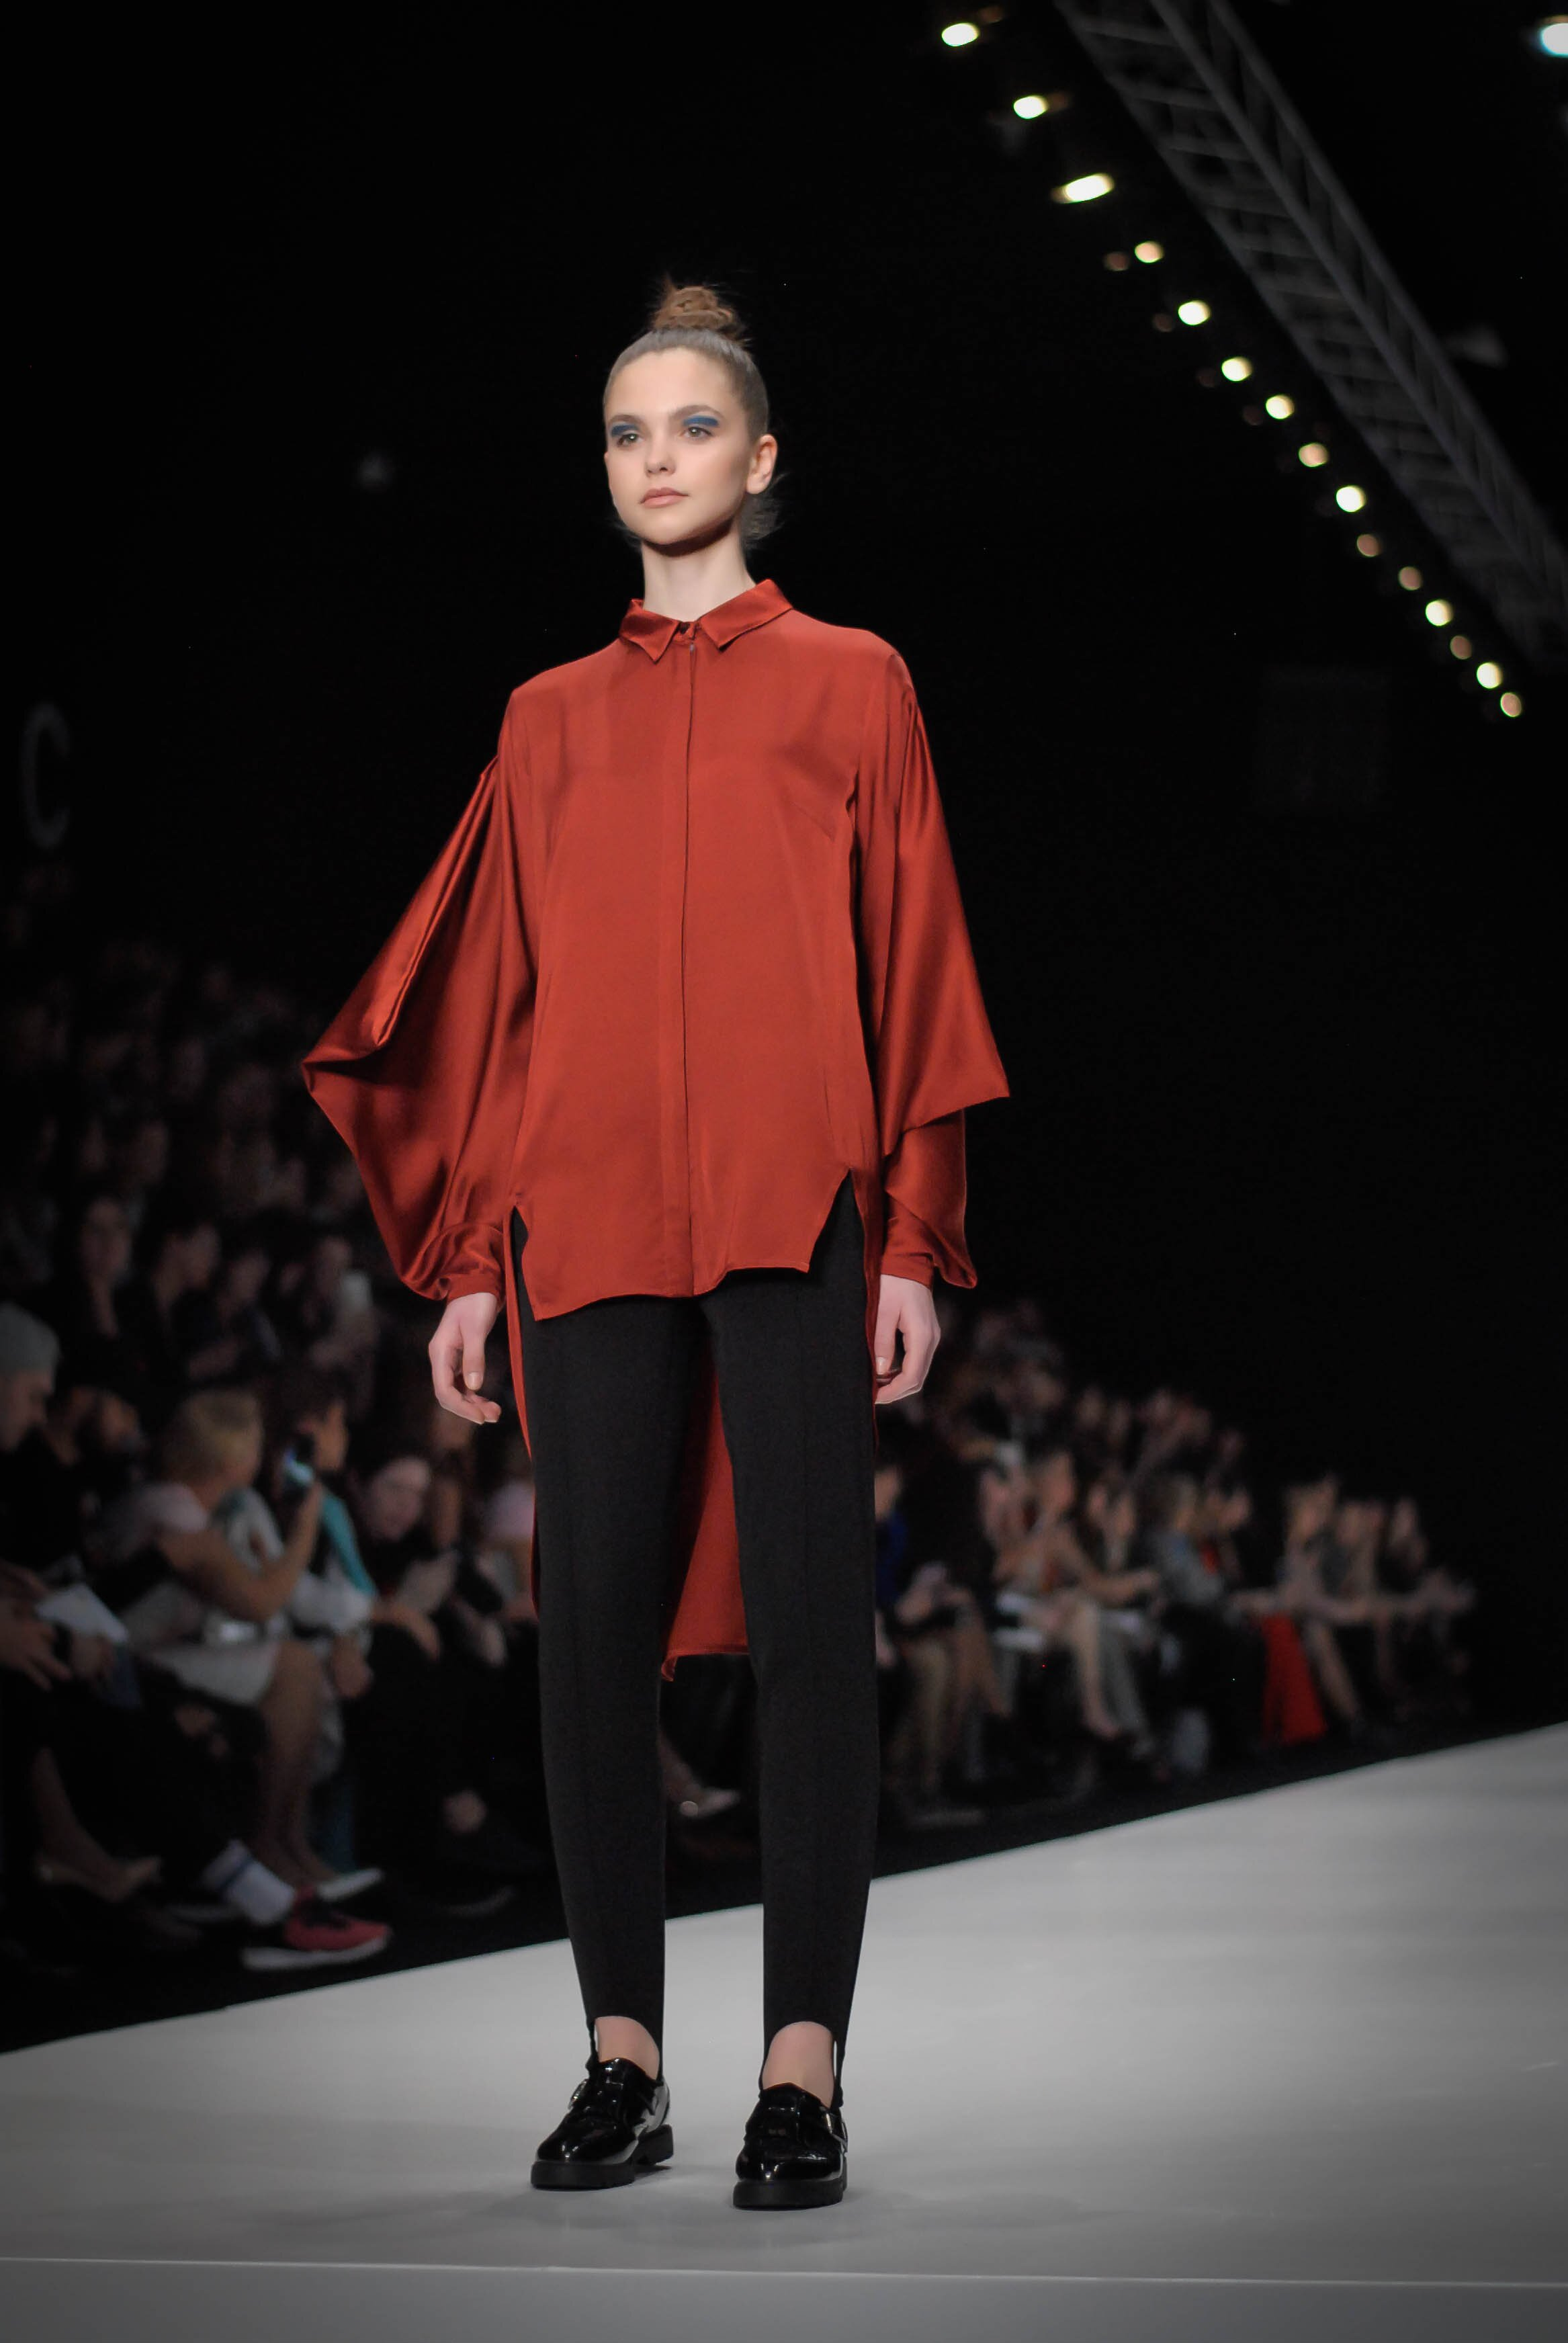 MBFW Russia: 1st day MBFW Russia: 1st day DSC0875